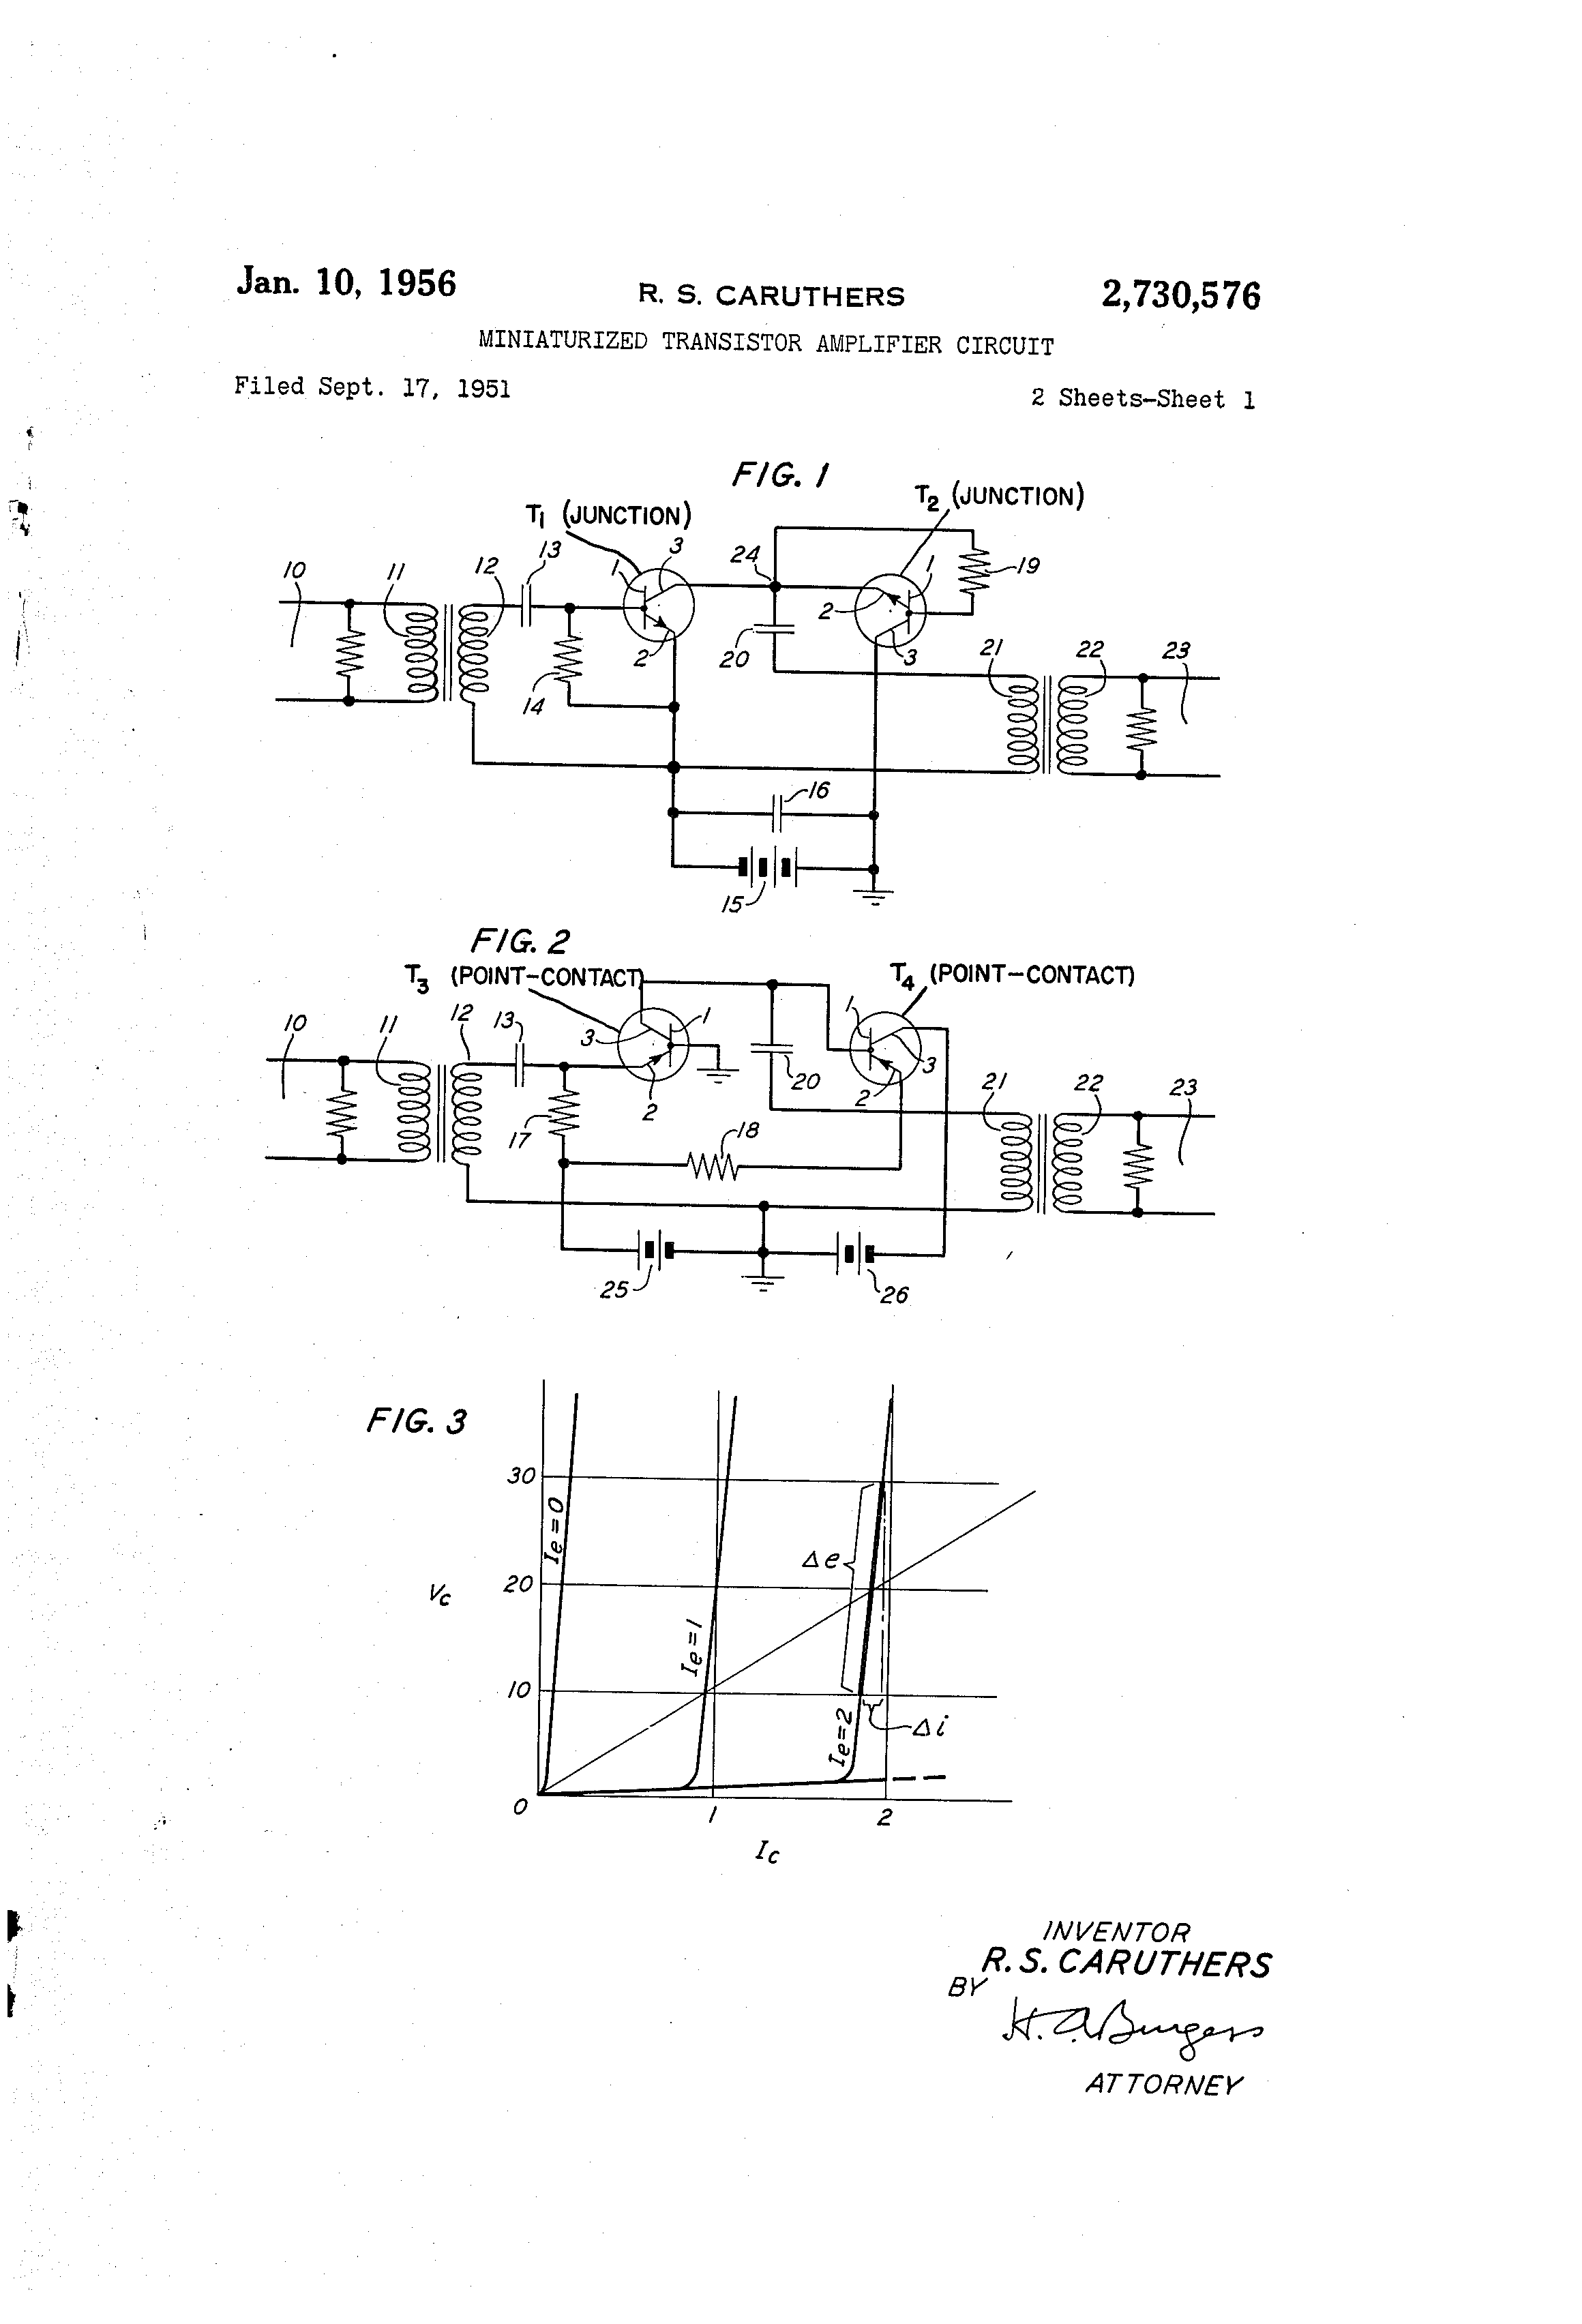 Patent Us2730576 Miniaturized Transistor Amplifier Circuit And Point Contact Junction Transistors Are Used Drawing